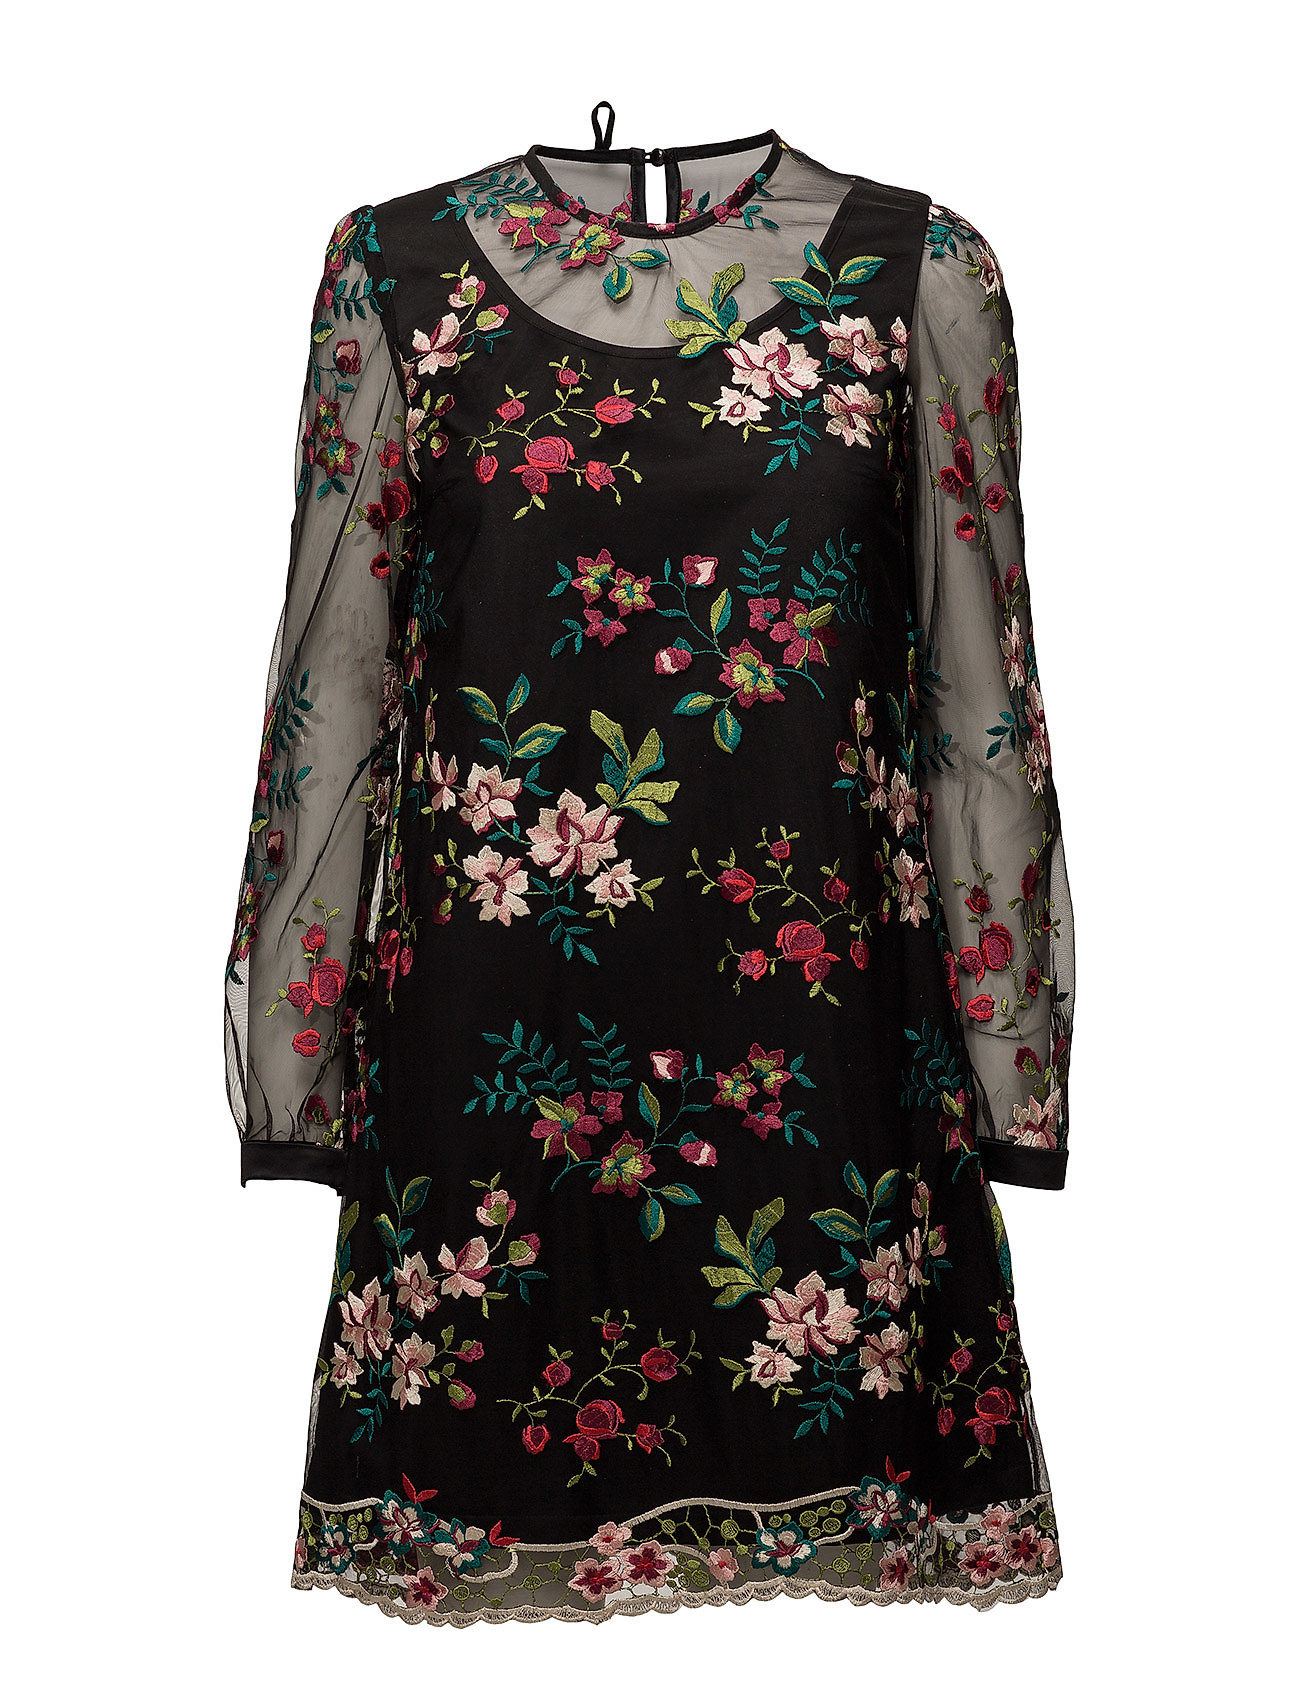 bdcd7314b2e9 Bridget Dress (Black multi) (1359 kr) - Ida Sjöstedt -